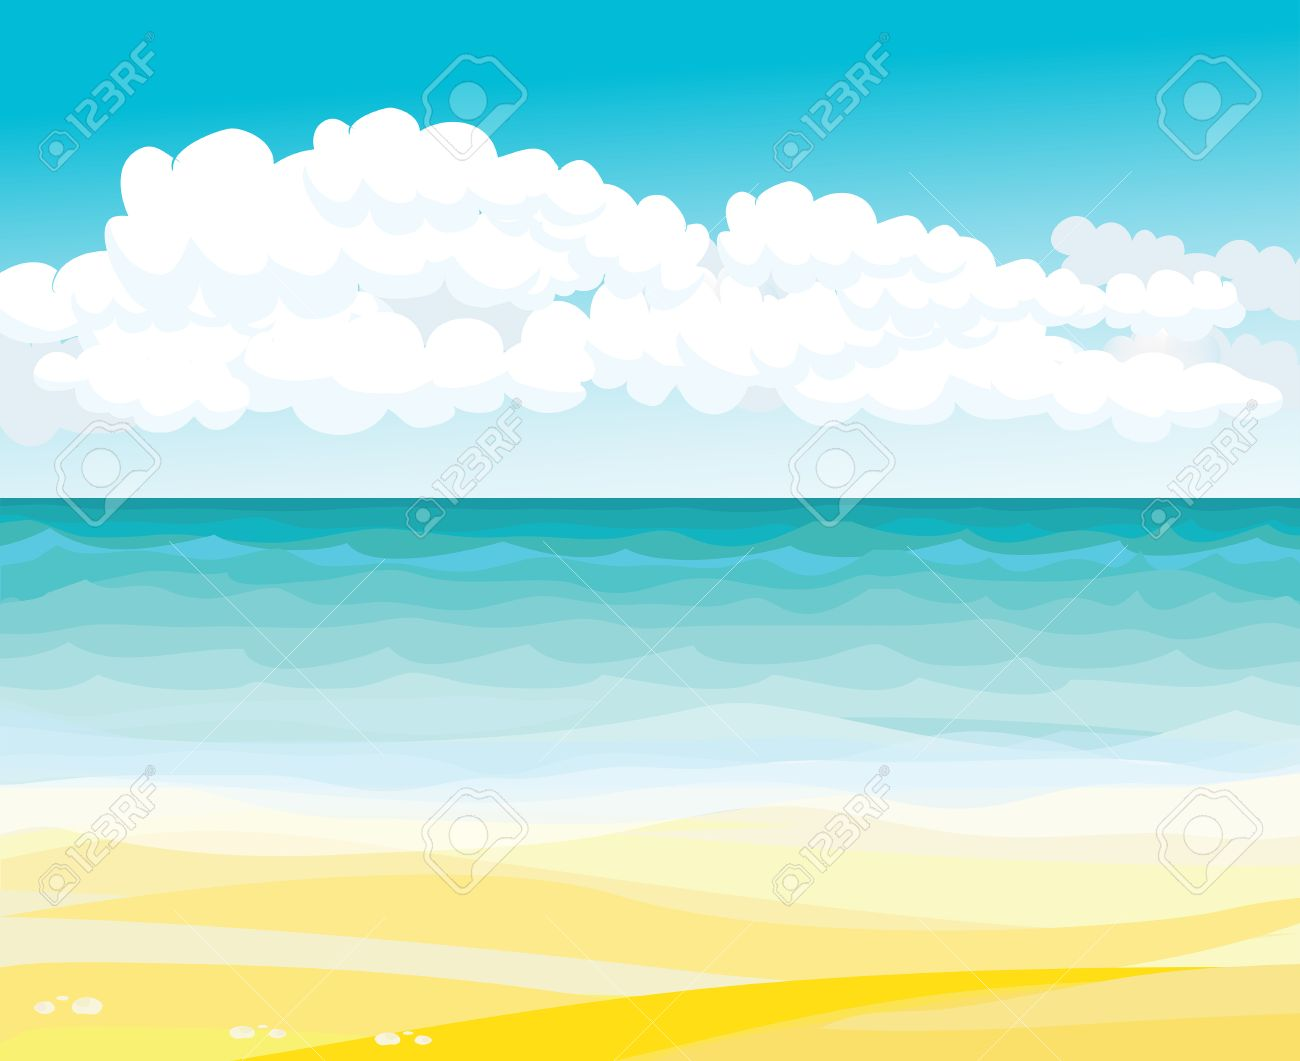 landscape drawing beach. drawing beach and sea landscape with clouds stock vector 36354132 b